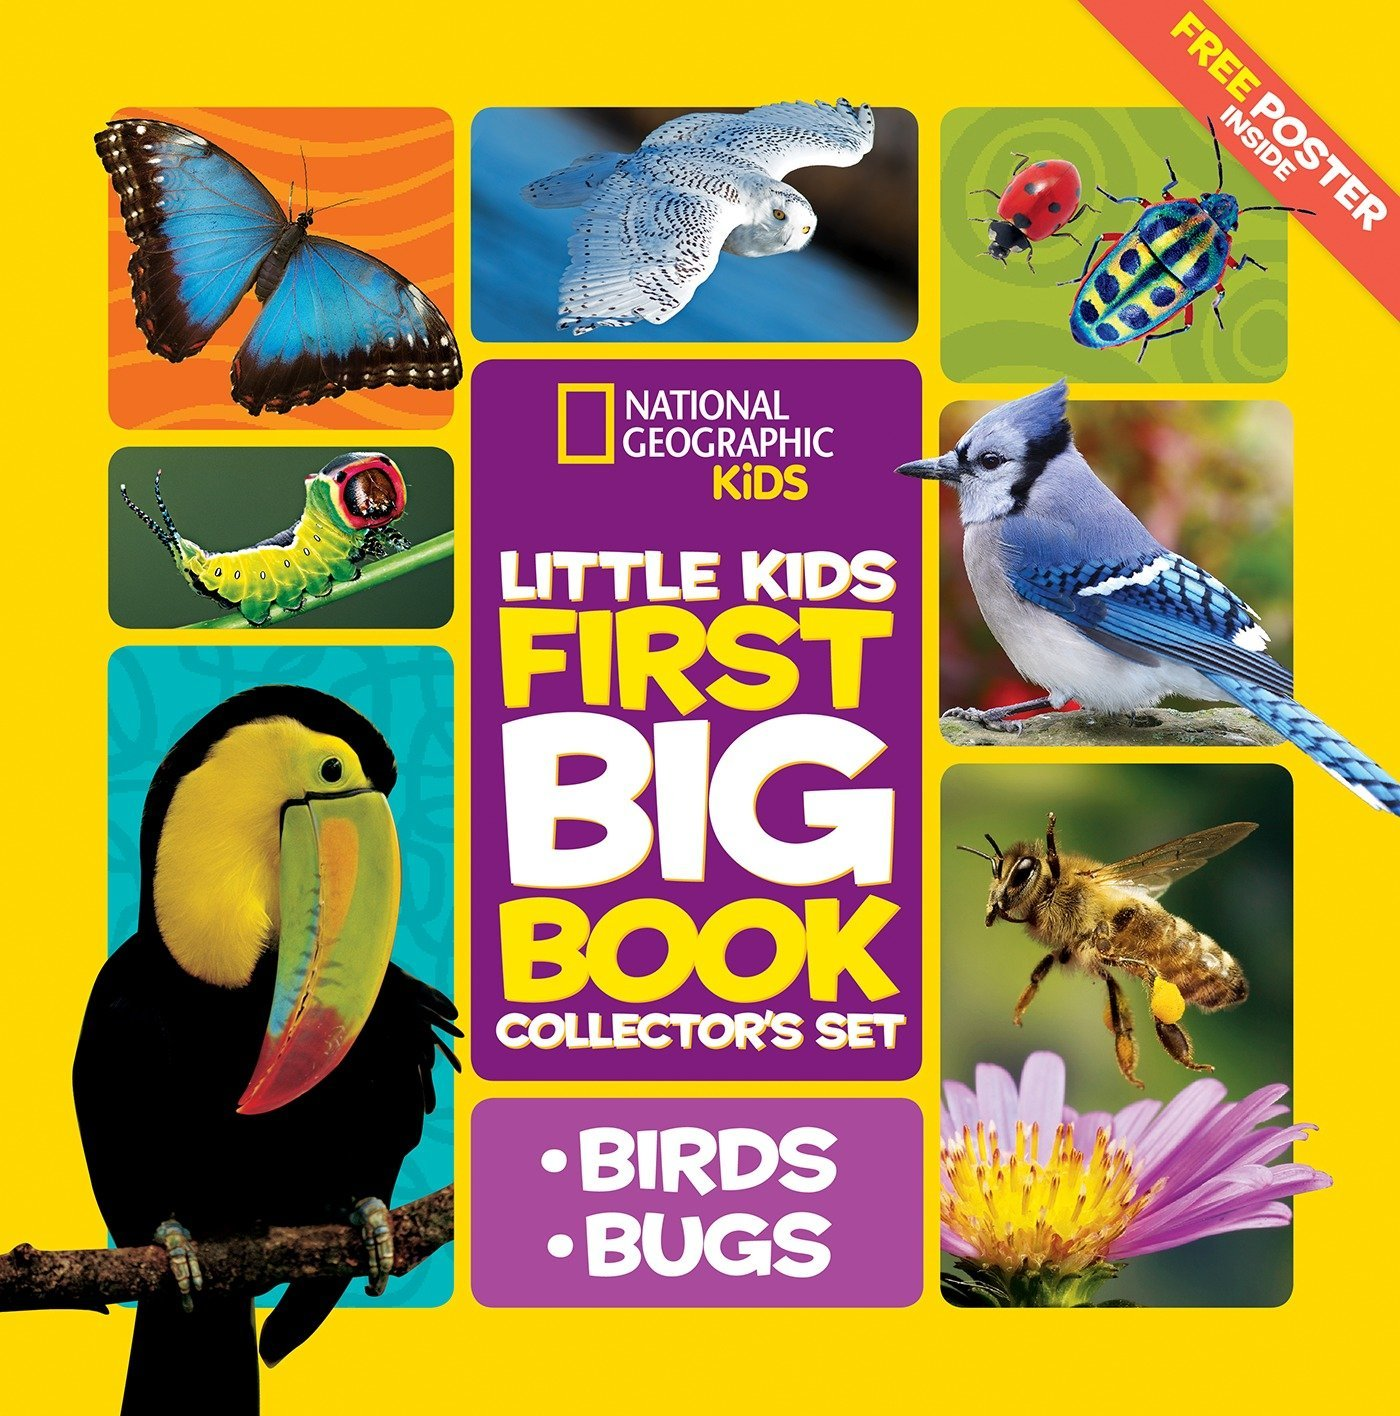 Little Kids First Big Book Collector's Set: Birds and Bugs pdf epub